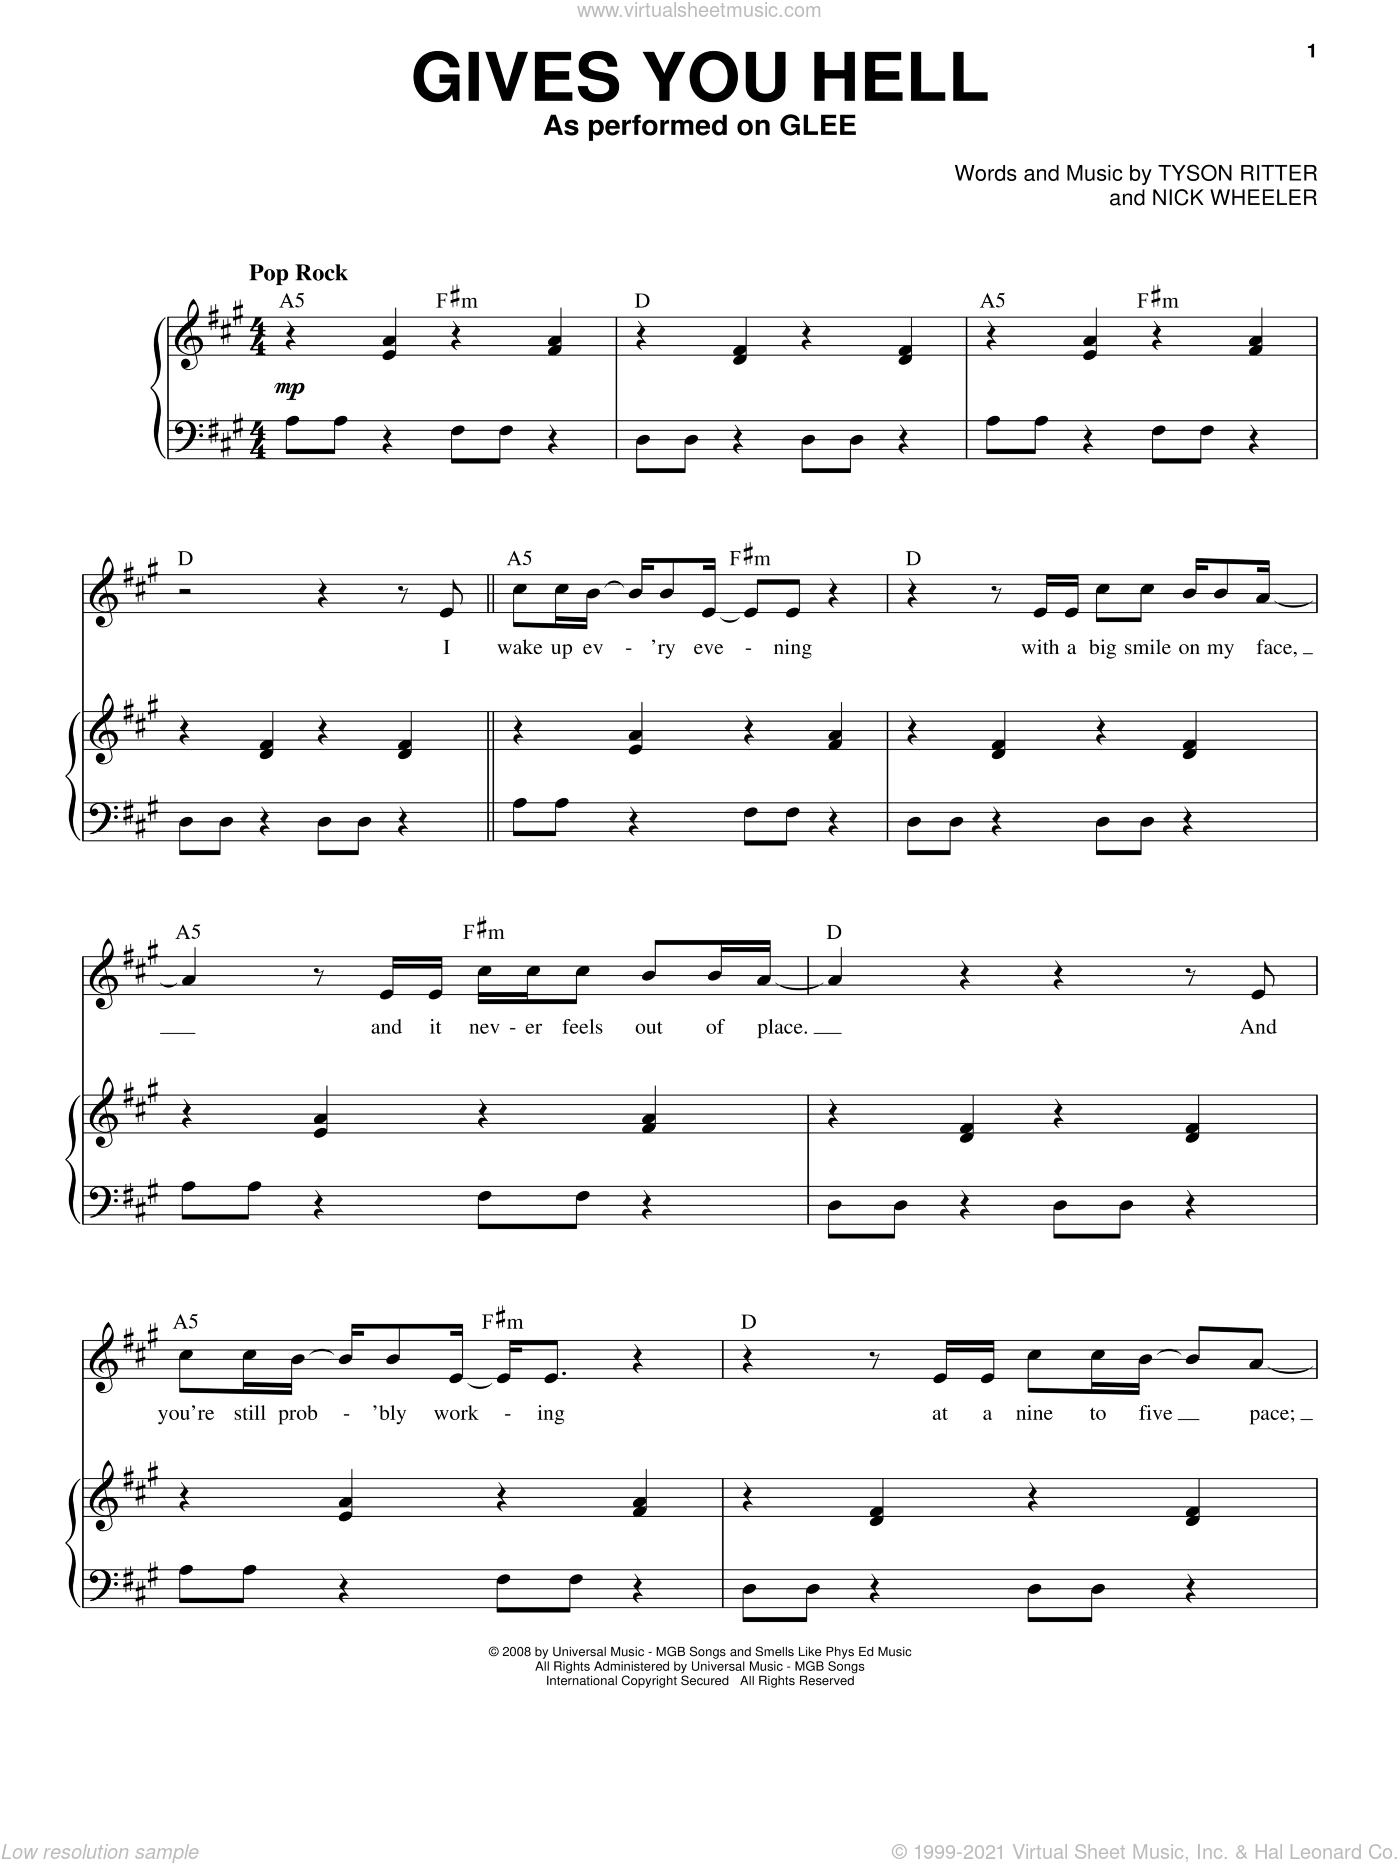 Gives You Hell sheet music for voice and piano by Tyson Ritter